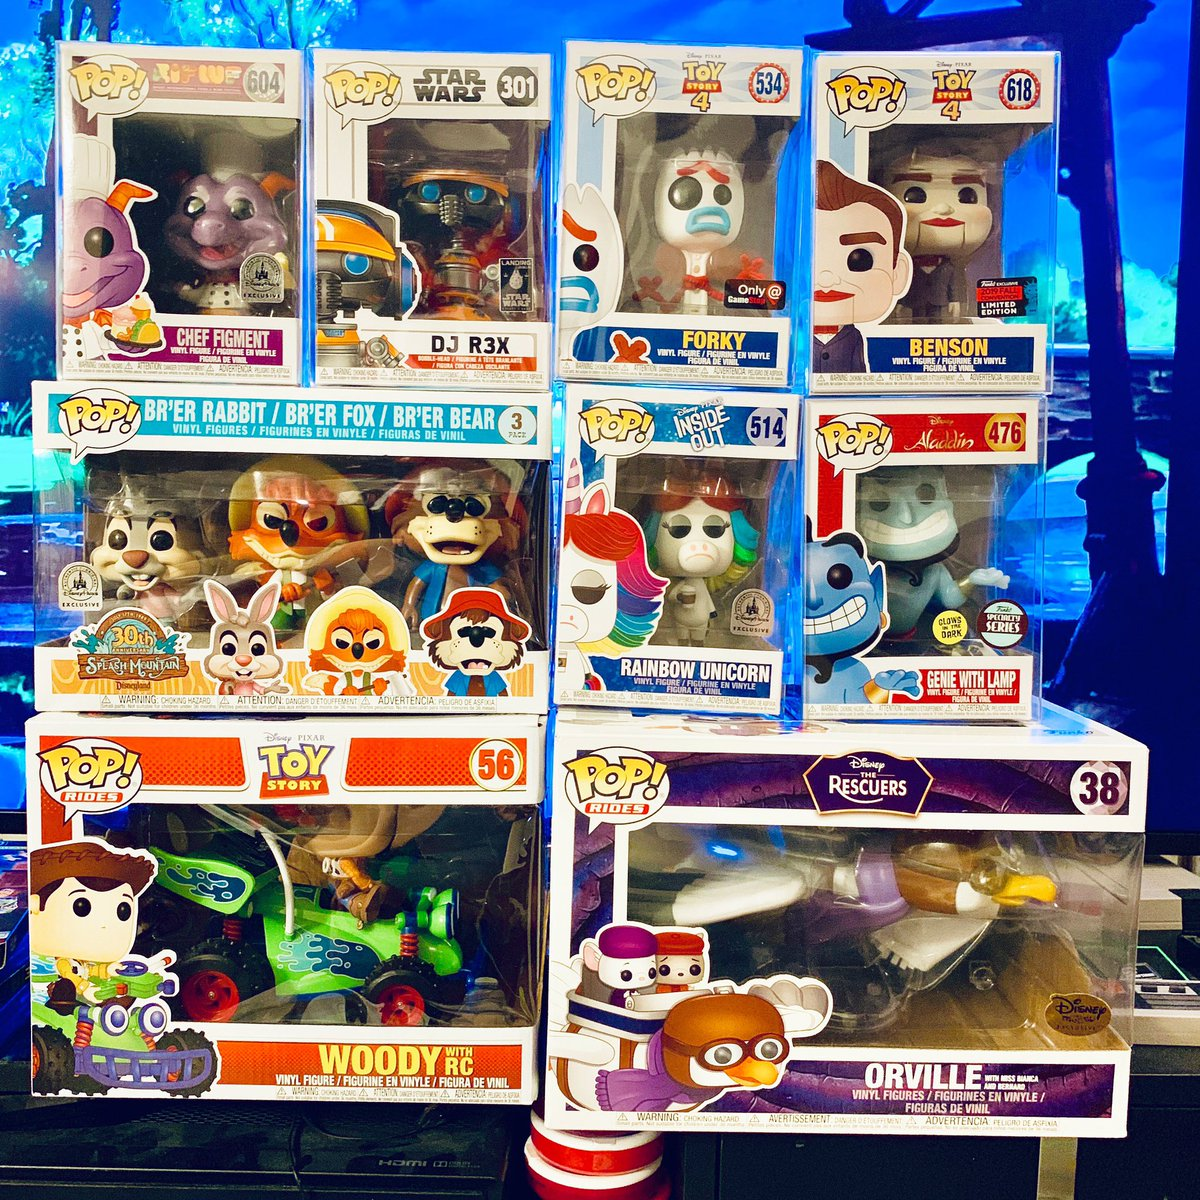 This week's #FunkoFriday haul is a #Disney #Pops bonanza! Finally got the #DisneyParks Splash Mountain 3-Pack and my sentimental favorite: #theRescuers!!! And completed the #ToyStory4 set with the #NYCC Benson! Officially out of shelf space!! #funkopops #funko #funatics #figment